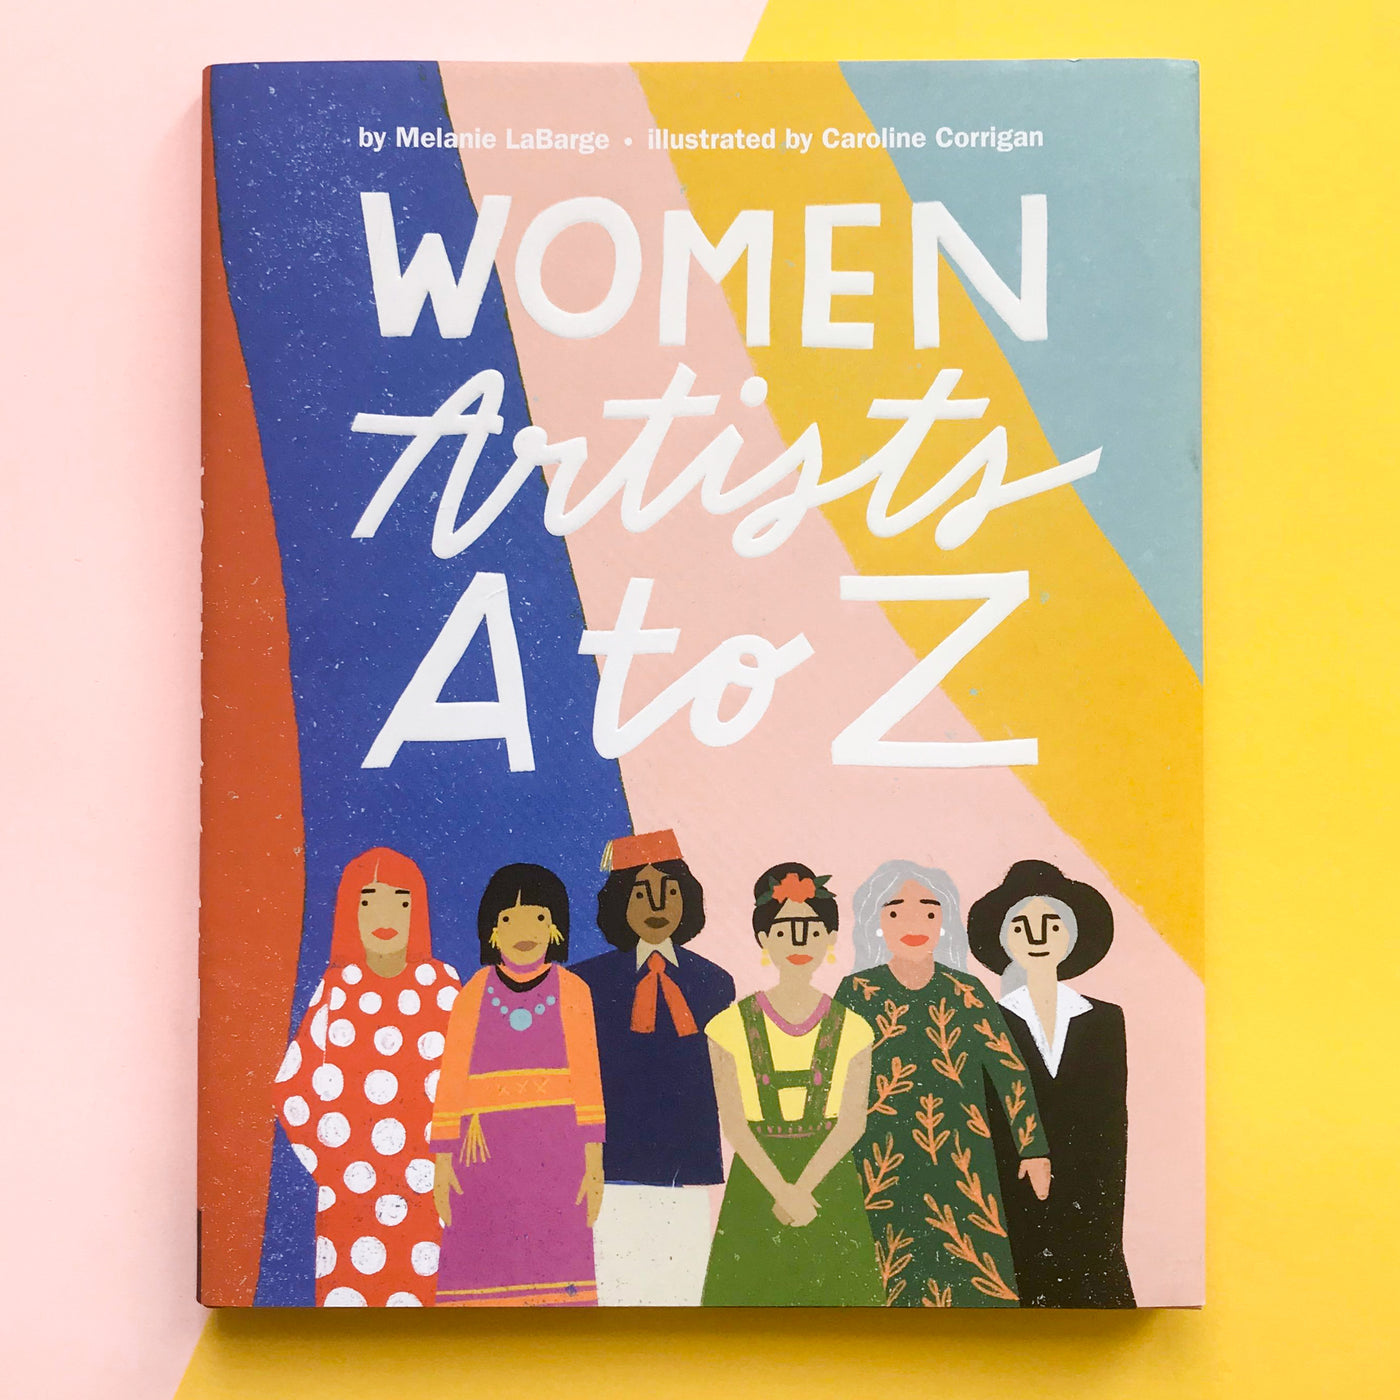 Women Artists A to Z by Melanie LaBarge and Illustrated by Caroline Corrigan